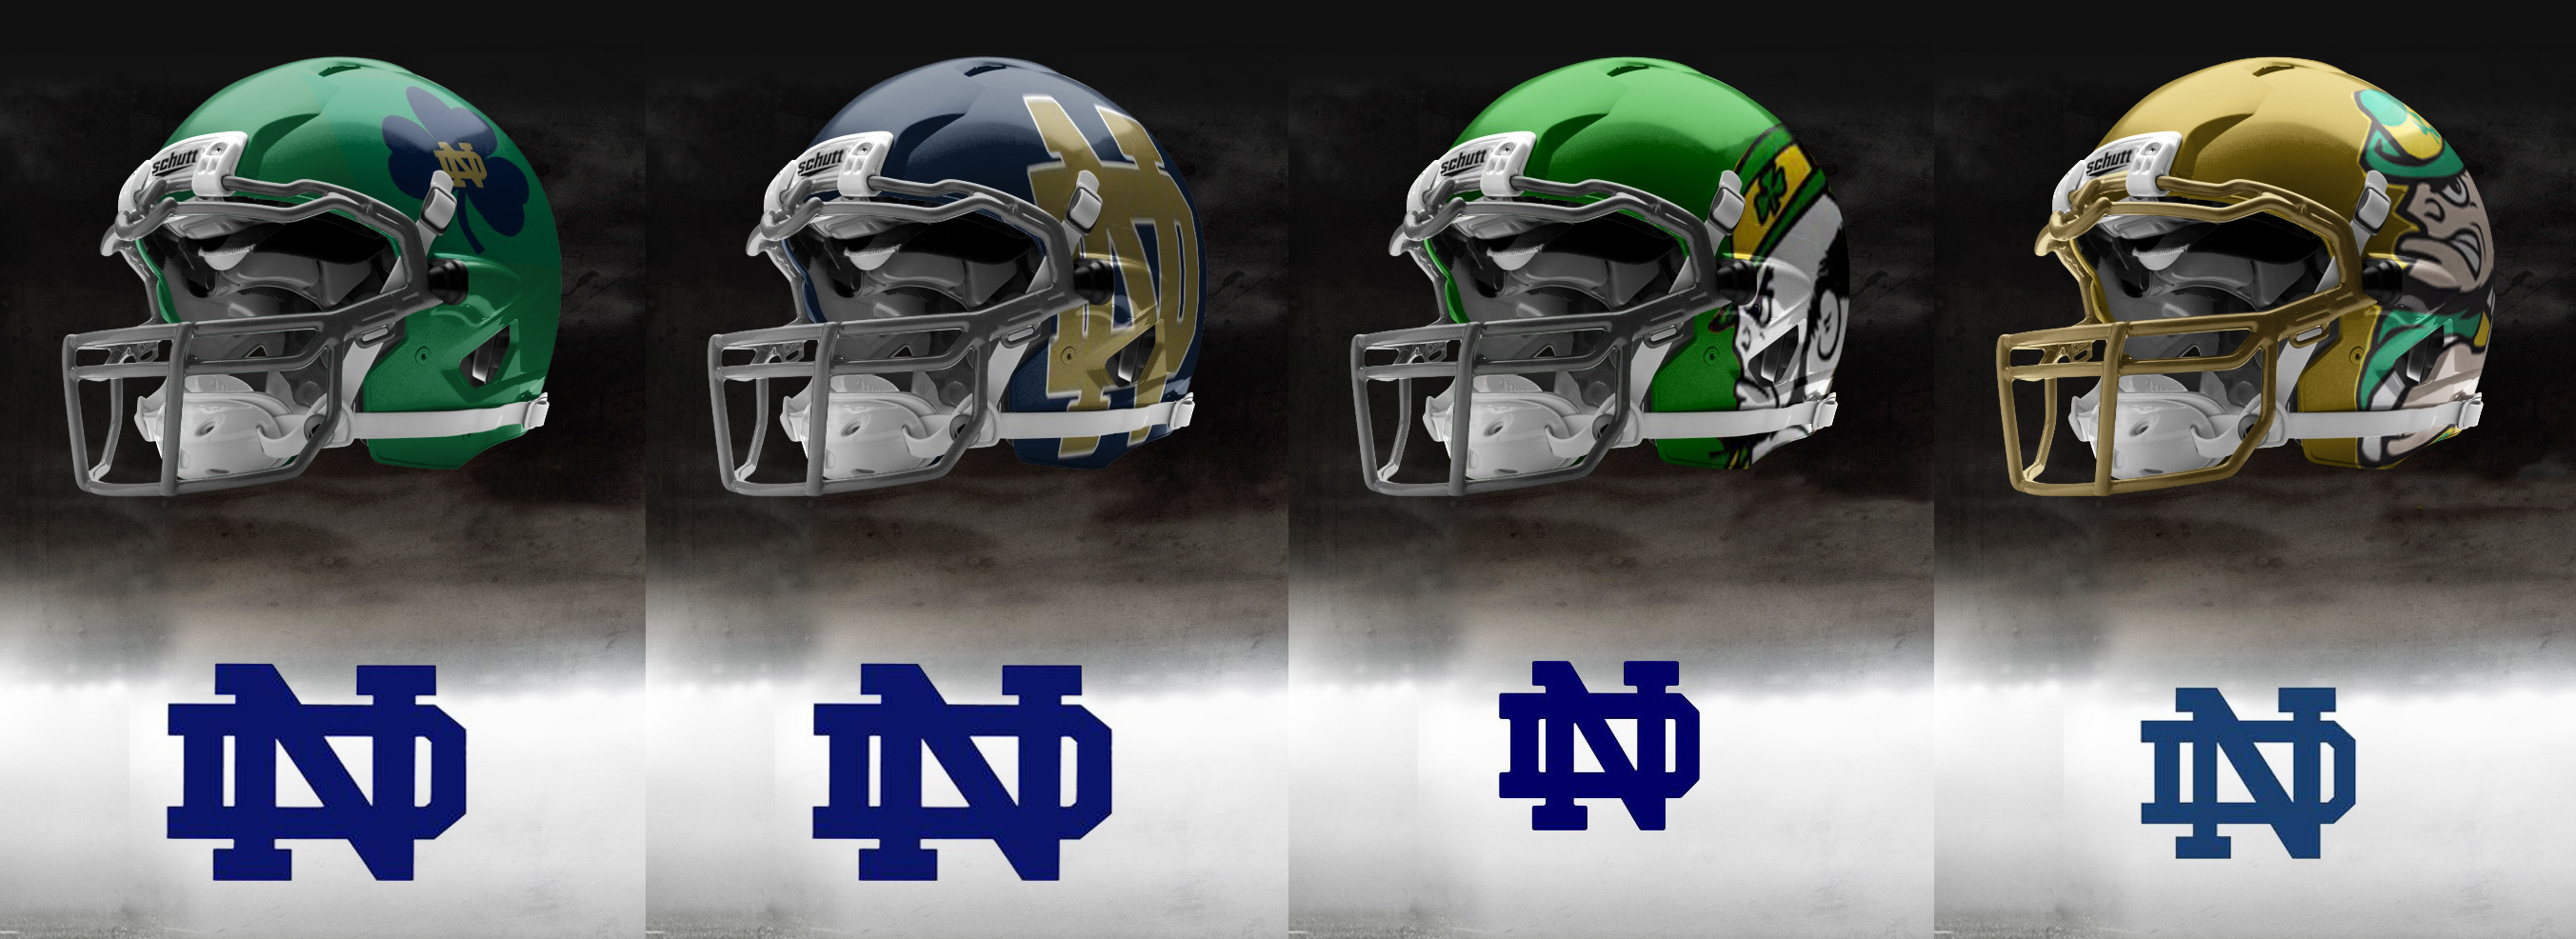 helmets 2 705—986 pixels Fightin Irish Fans ly